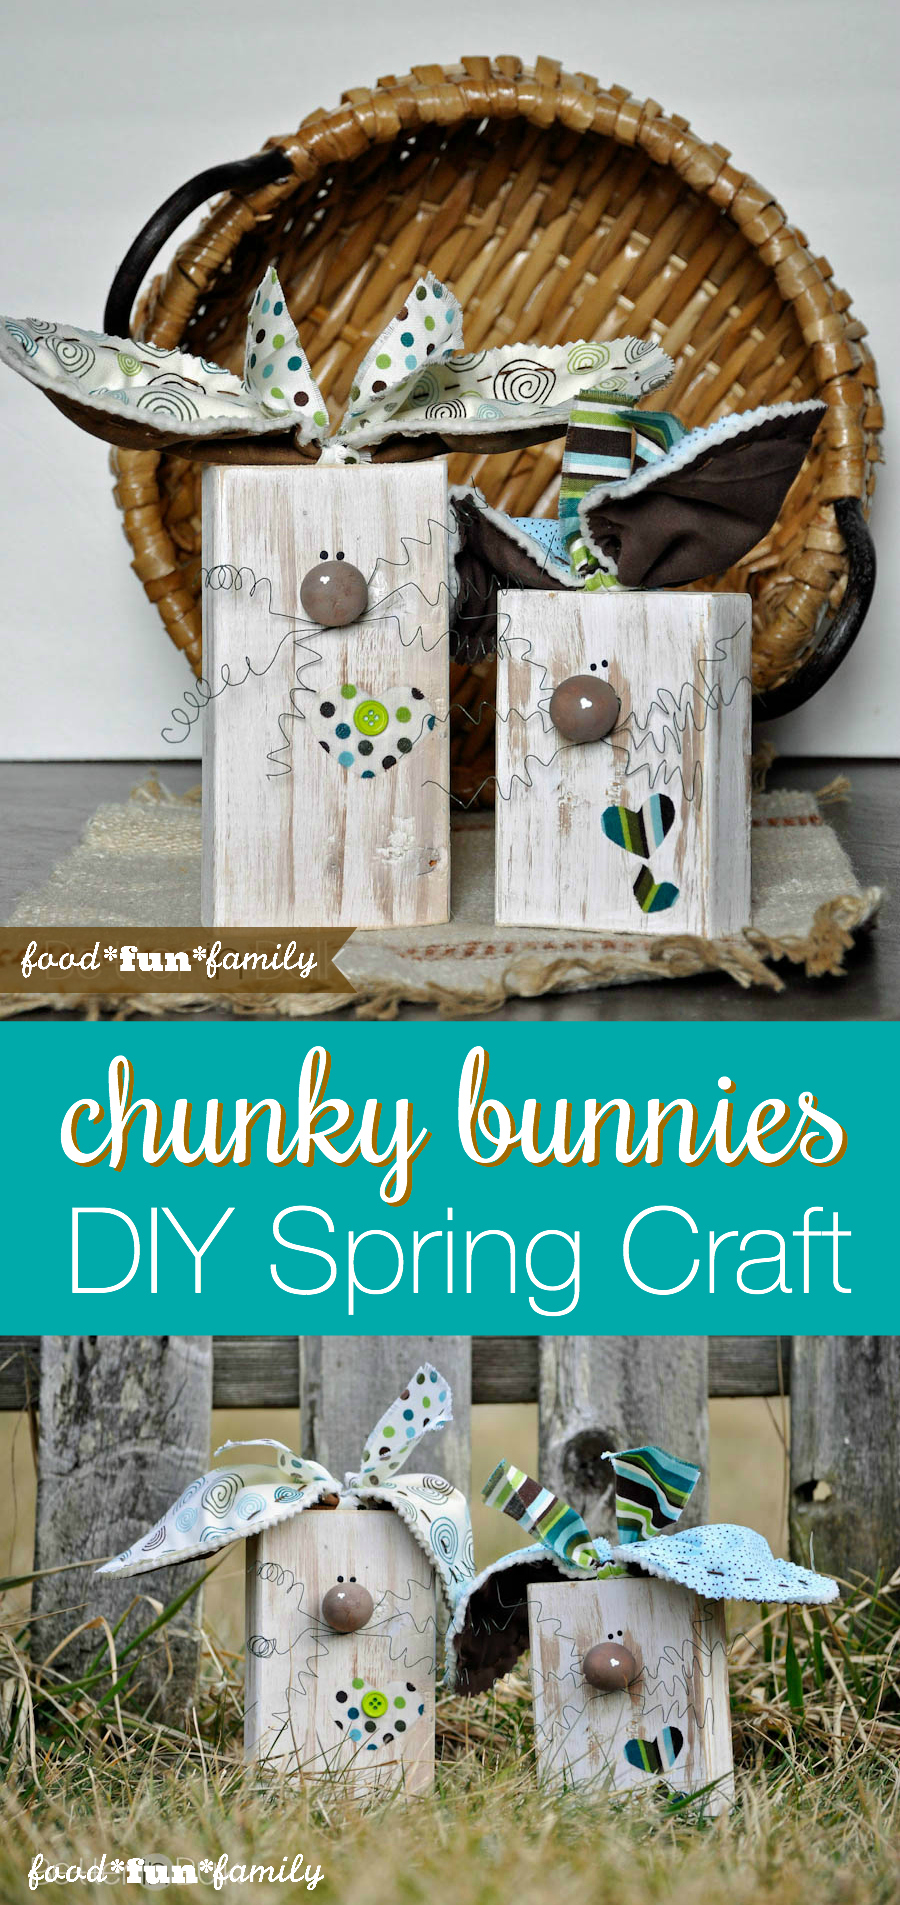 What a FUN DIY Spring craft project! These Chunky Bunnies loo so fancy but they are really EASY to make!